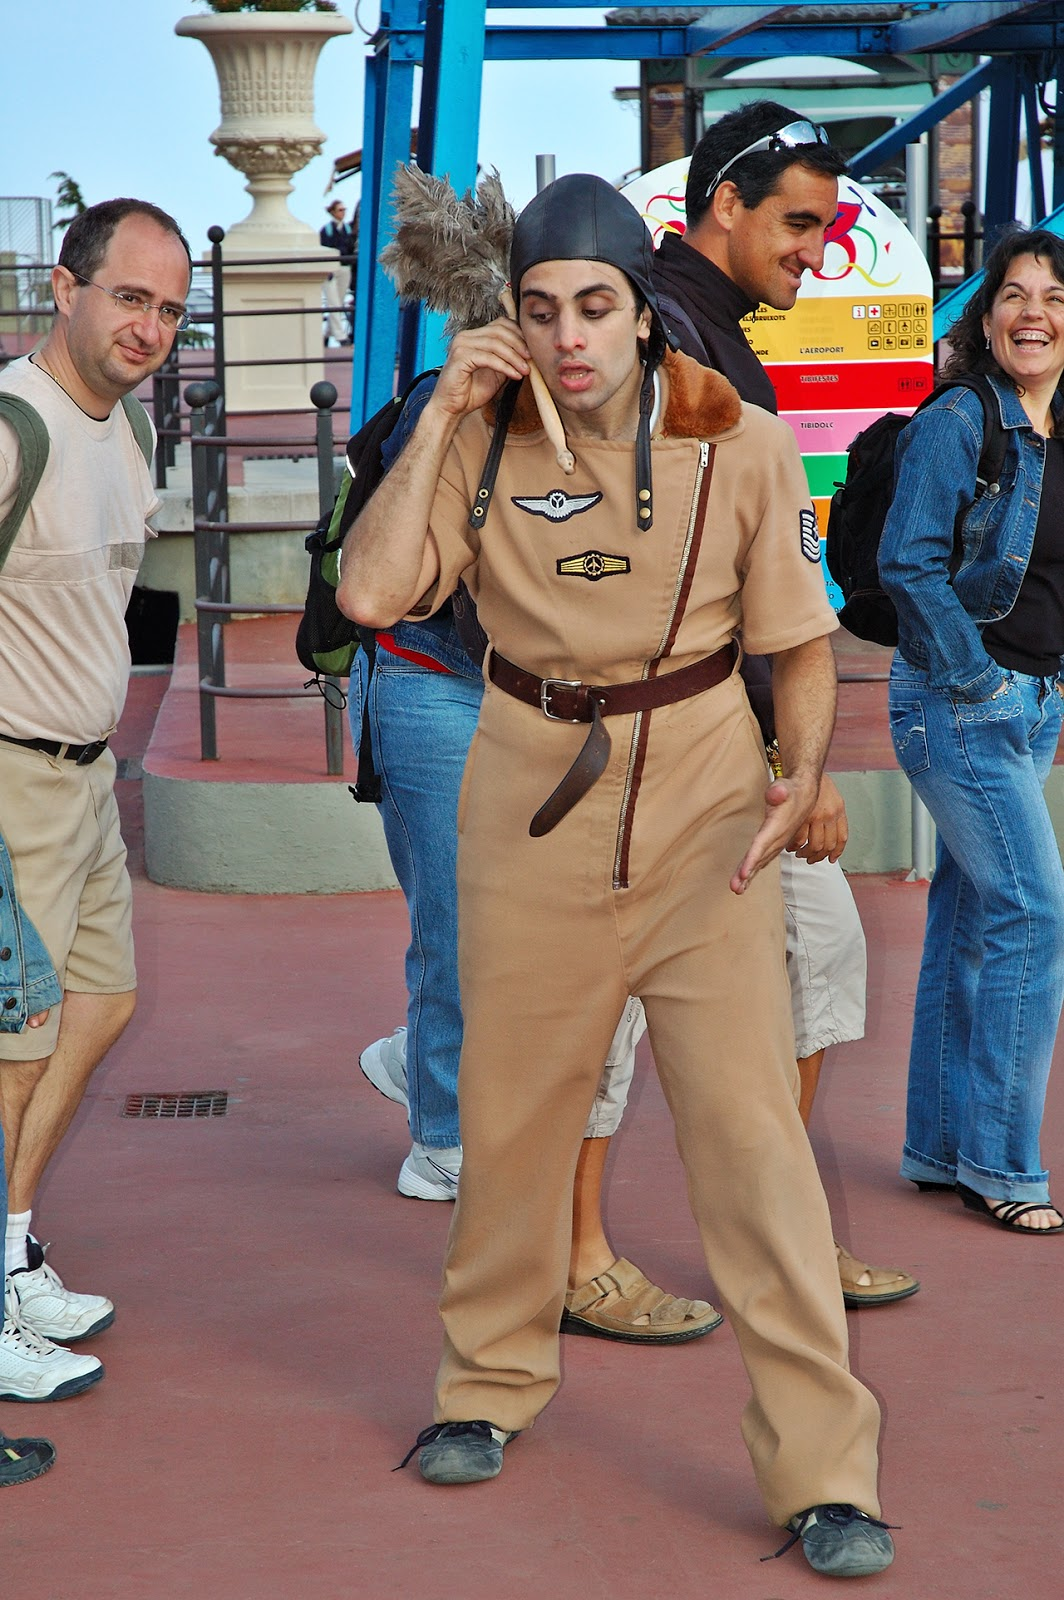 Mime at Tibidabo Amusement Park